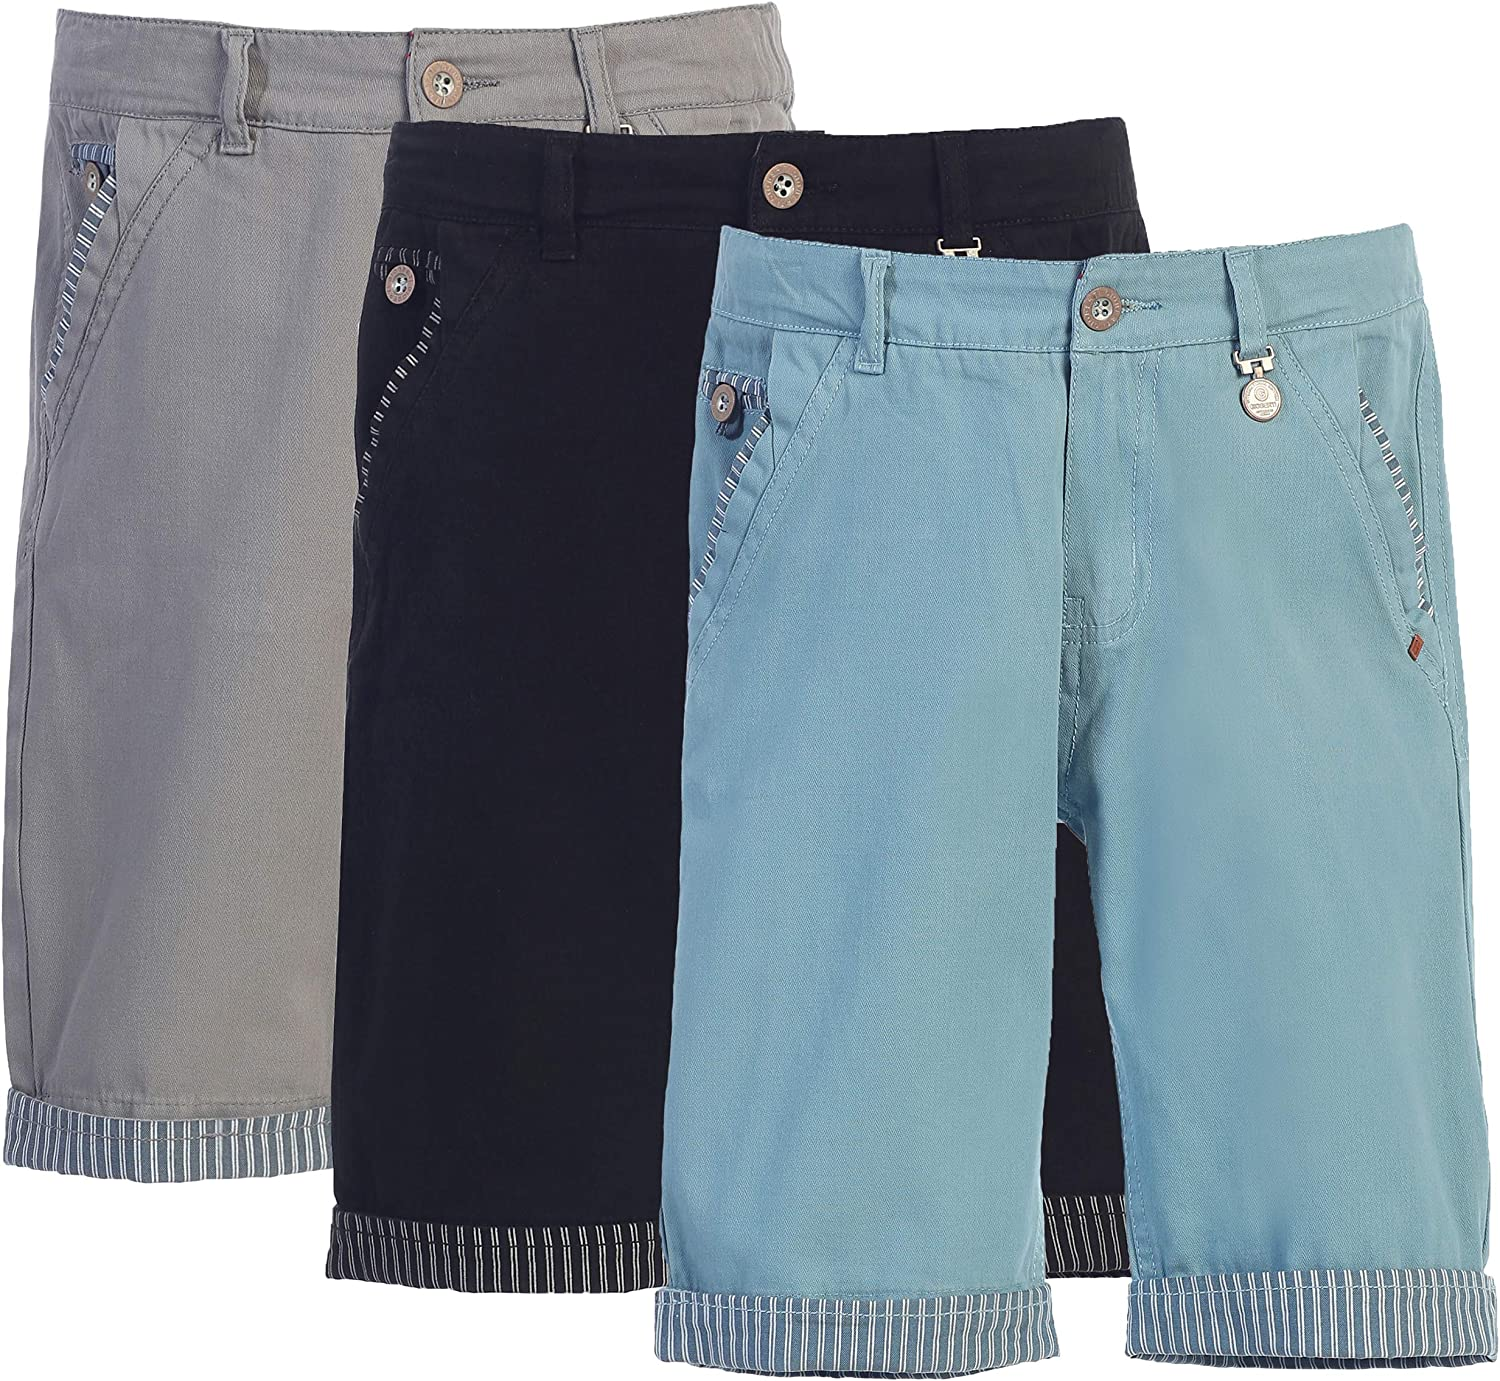 Gioberti Over item handling Boy's Max 82% OFF Garment Wash Casual Shorts Contrast with Stripe D